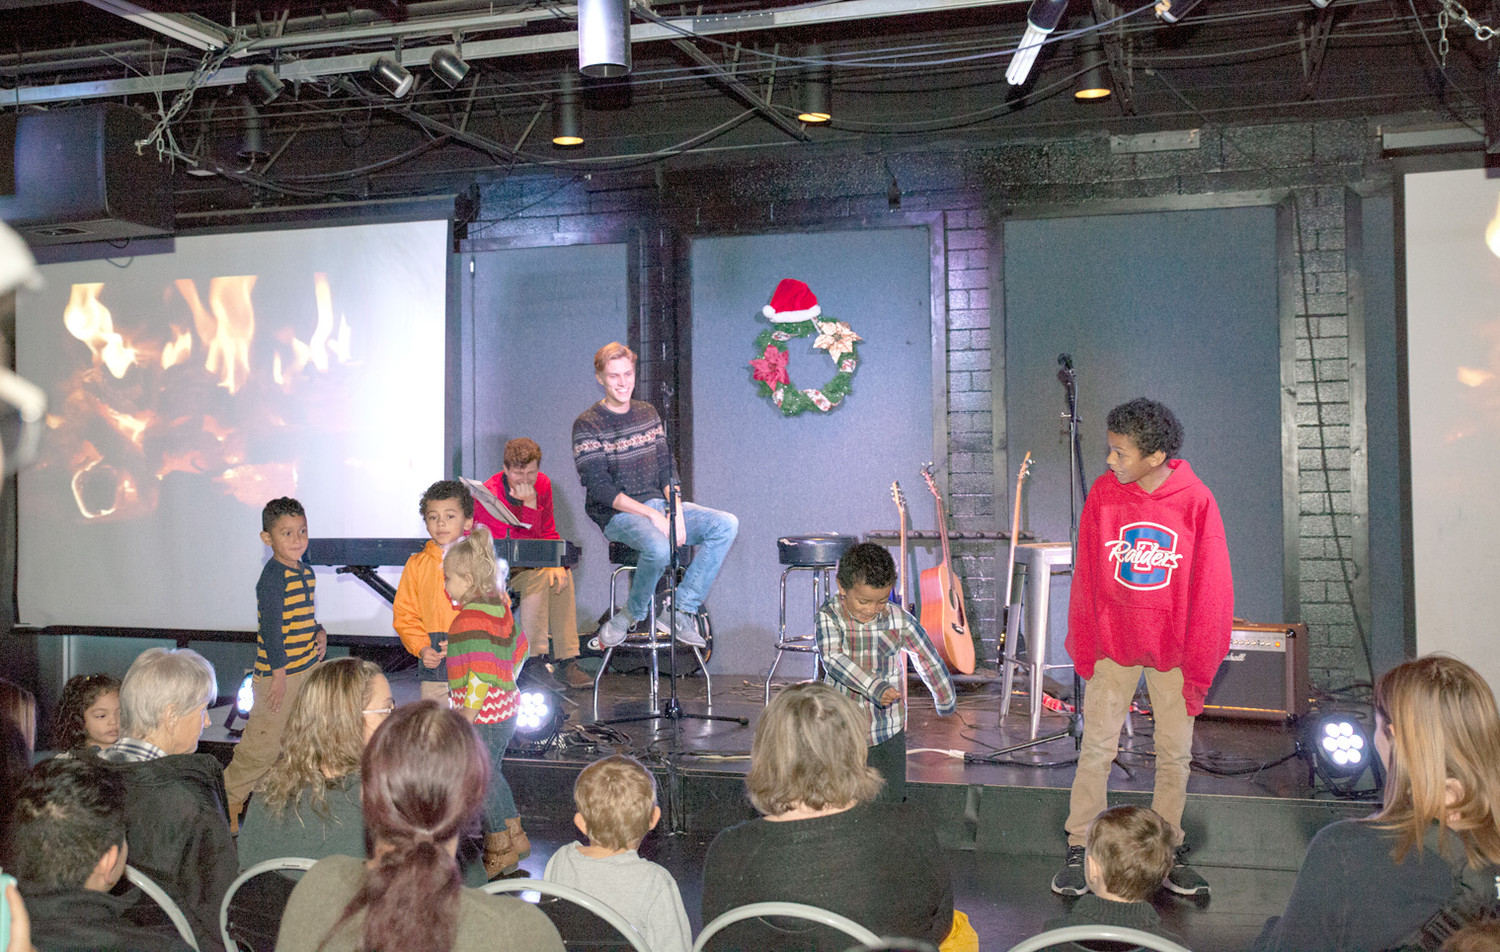 IN THE PERFORMING ARTS room, volunteers Jonathan Cox, back left, and Jesse Miller, center, look on as some children chosen from the crowd participate in a dance-off.  Attendees were treated to singing, dancing, jokes and games prior to their meal at the Catch the Spirit event.